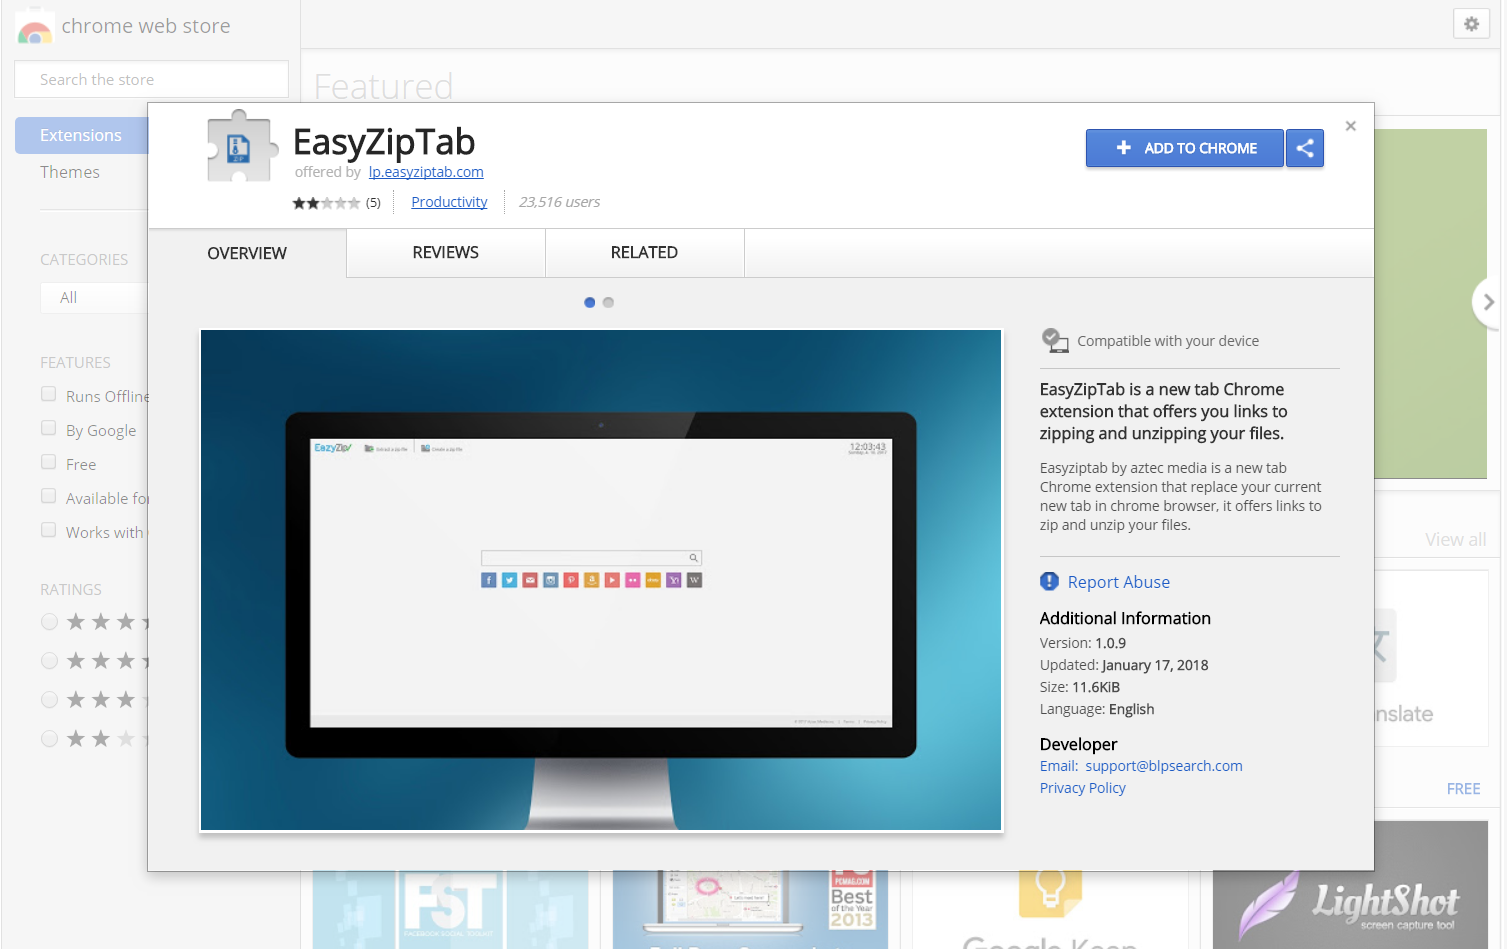 eazyziptab extension chrome web store